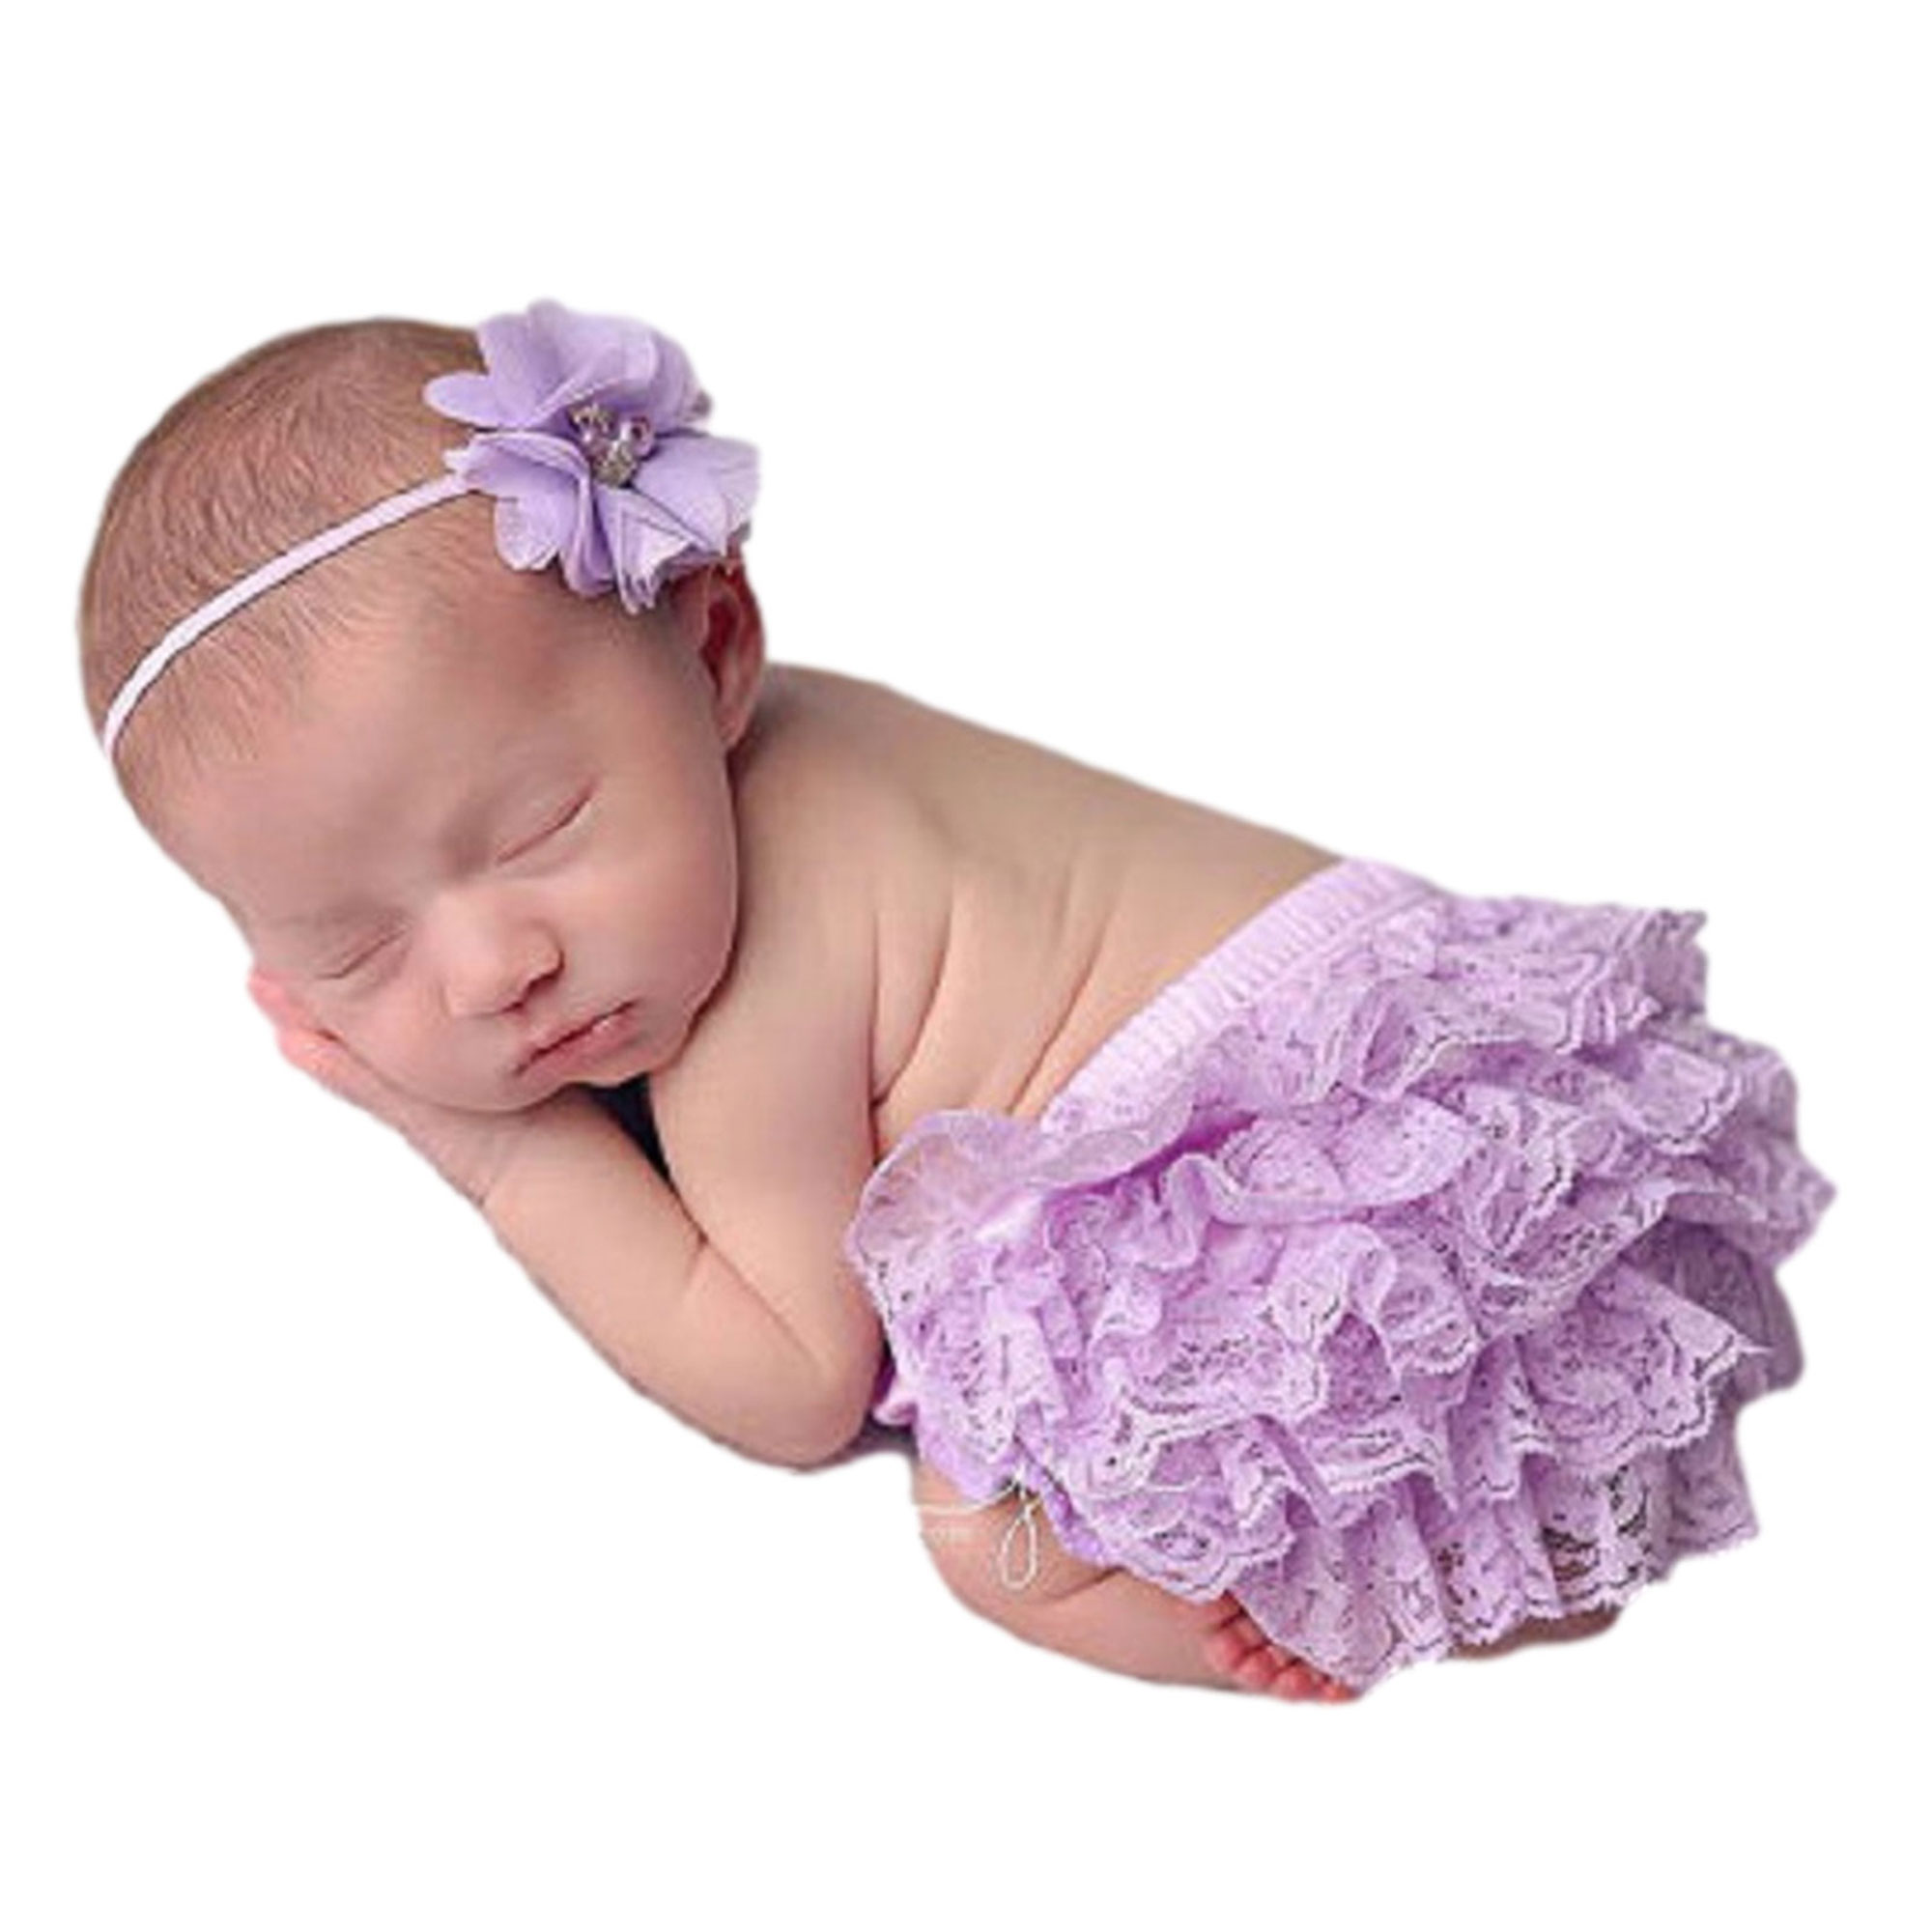 Infant Bloomers Toddler Bloomers Diaper Cover Spring Bloomers Purple High Waist Baby Bloomers with Matching Headband